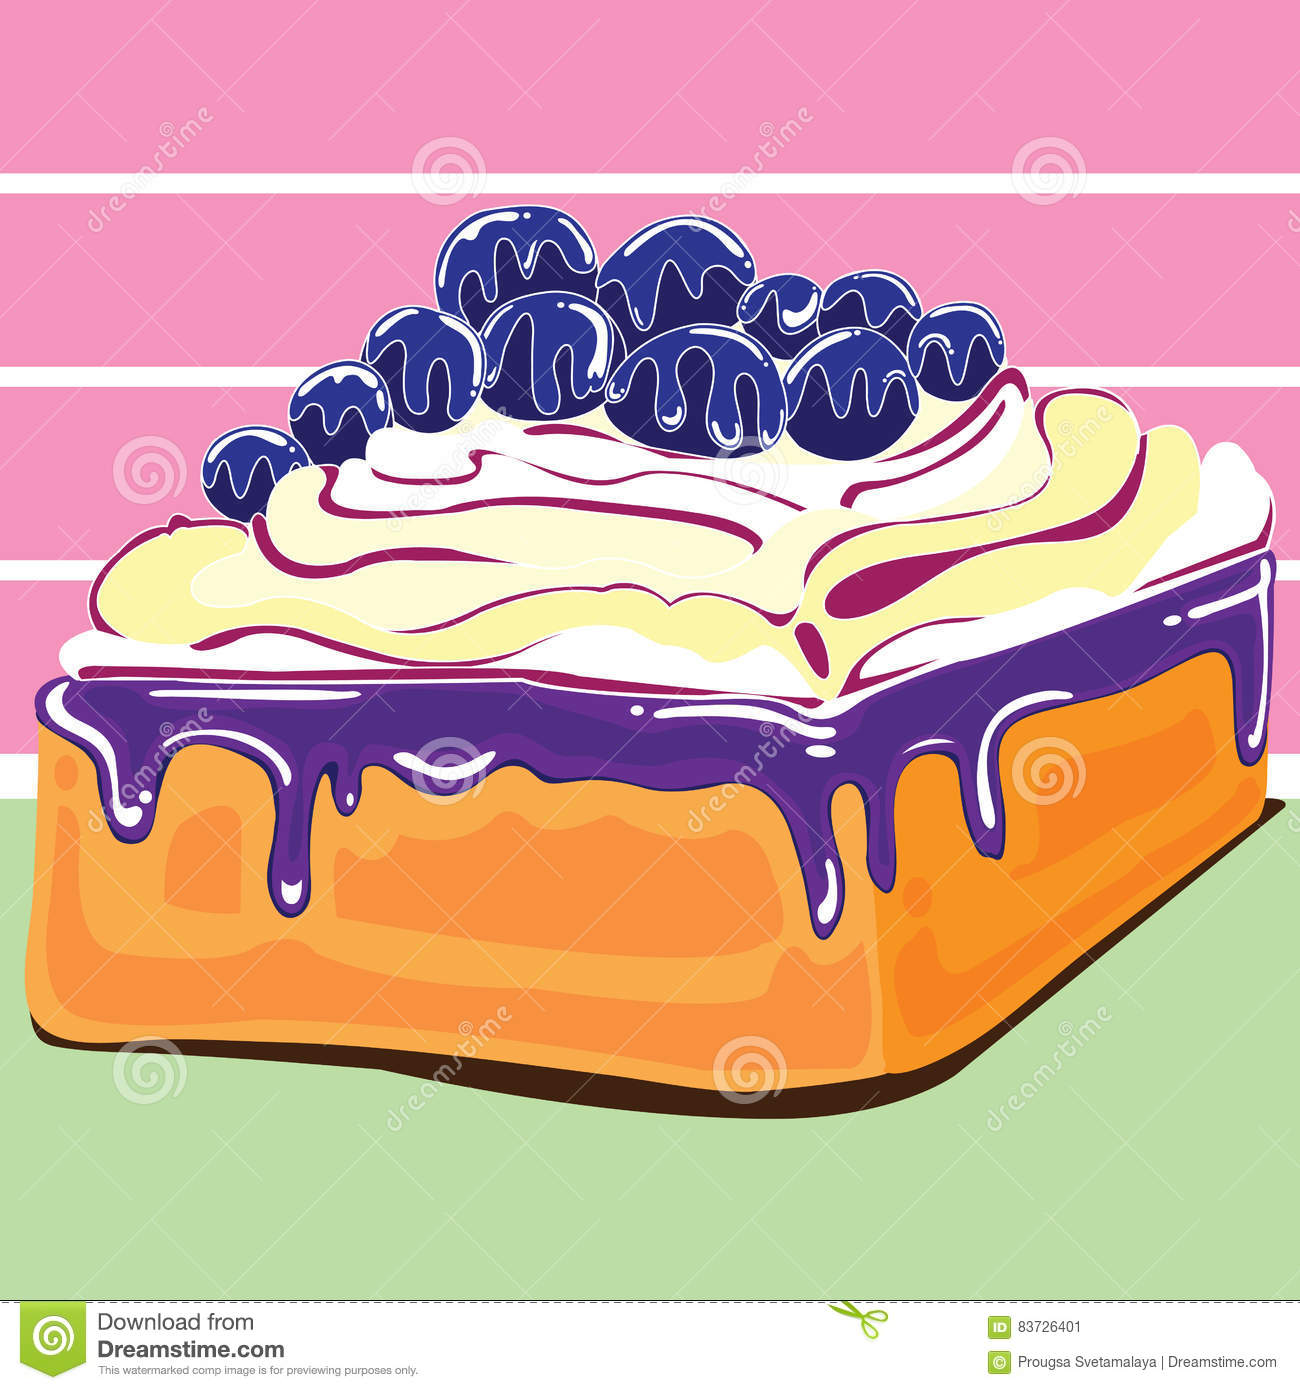 Blueberry Cake Design Stock Vector Illustration Of Food 83726401